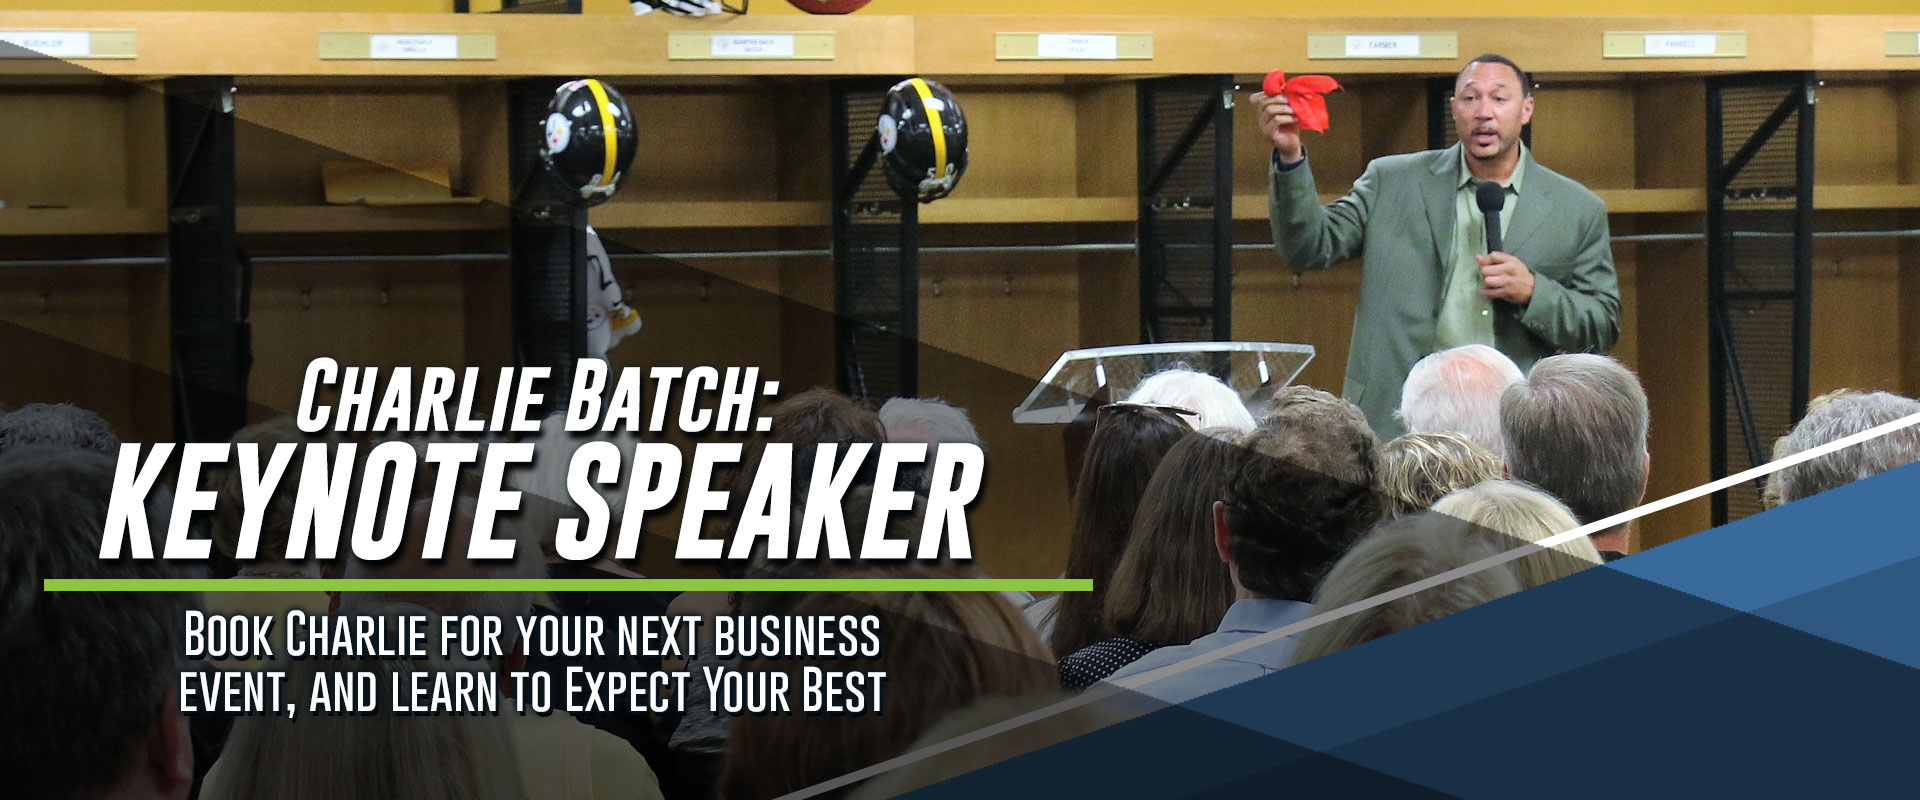 Charlie Batch Expect Your Best Keynote Speaker Slider